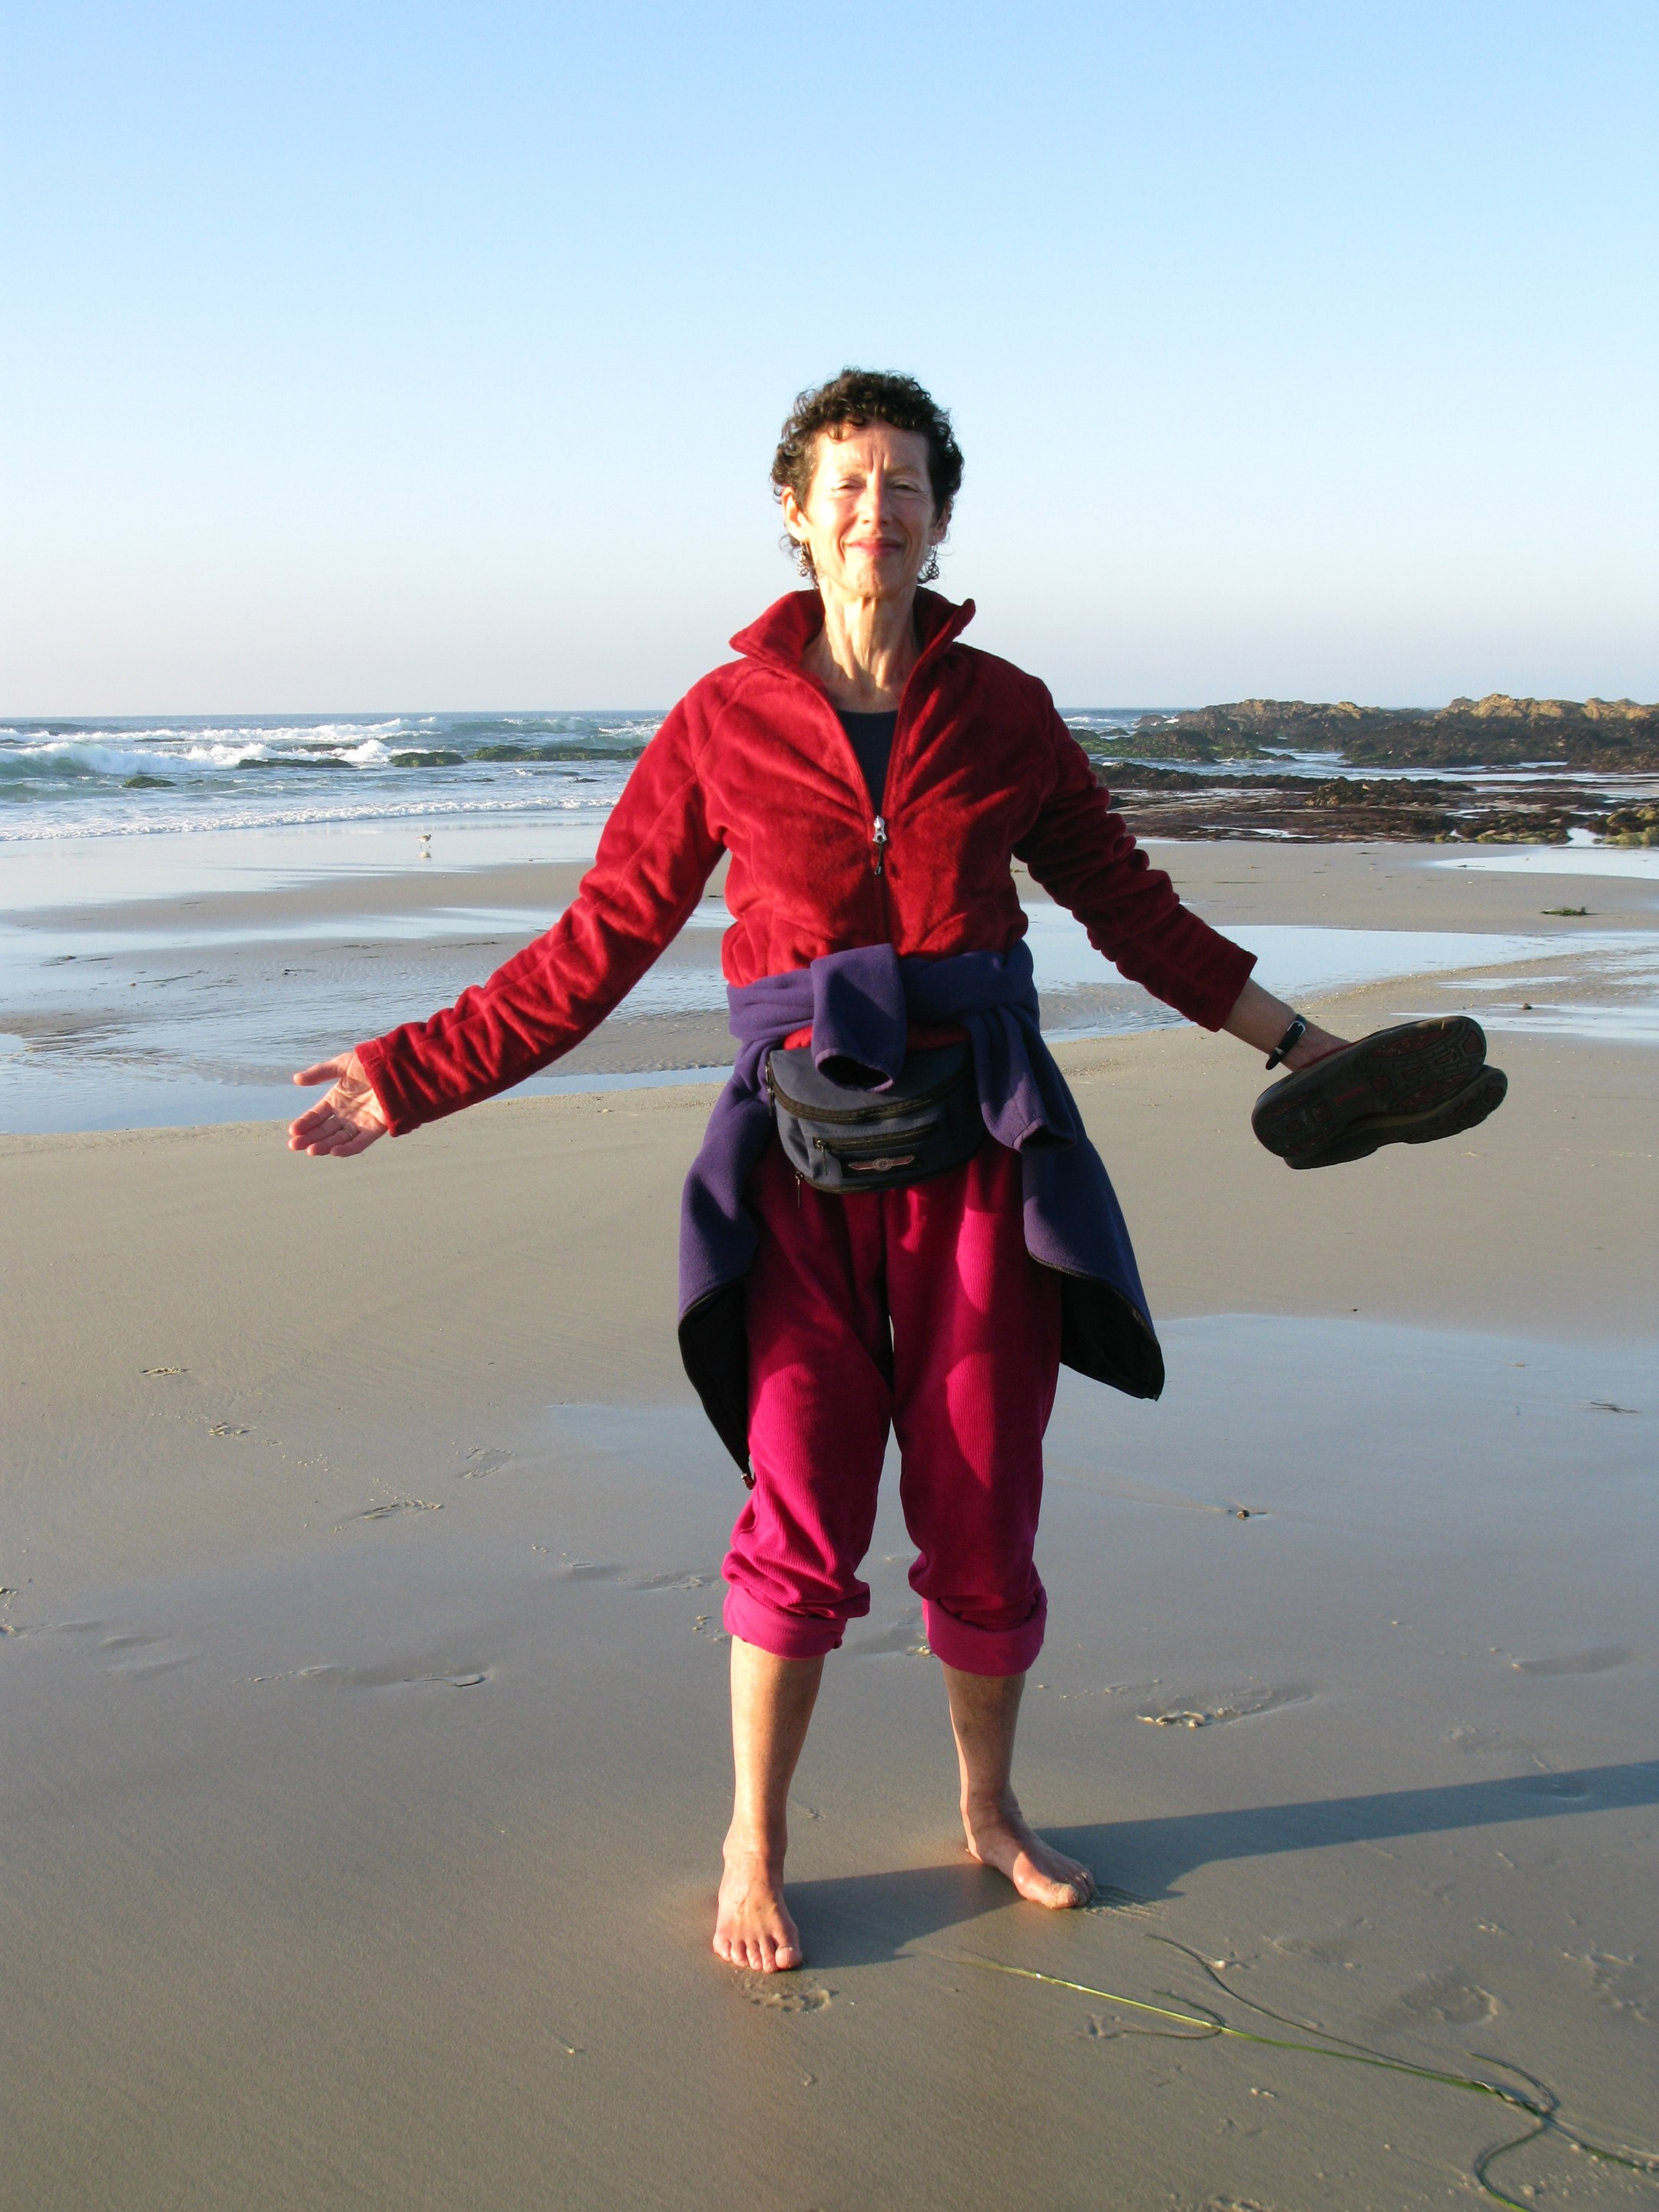 Image : Nancy barefoot on Asilomar beach